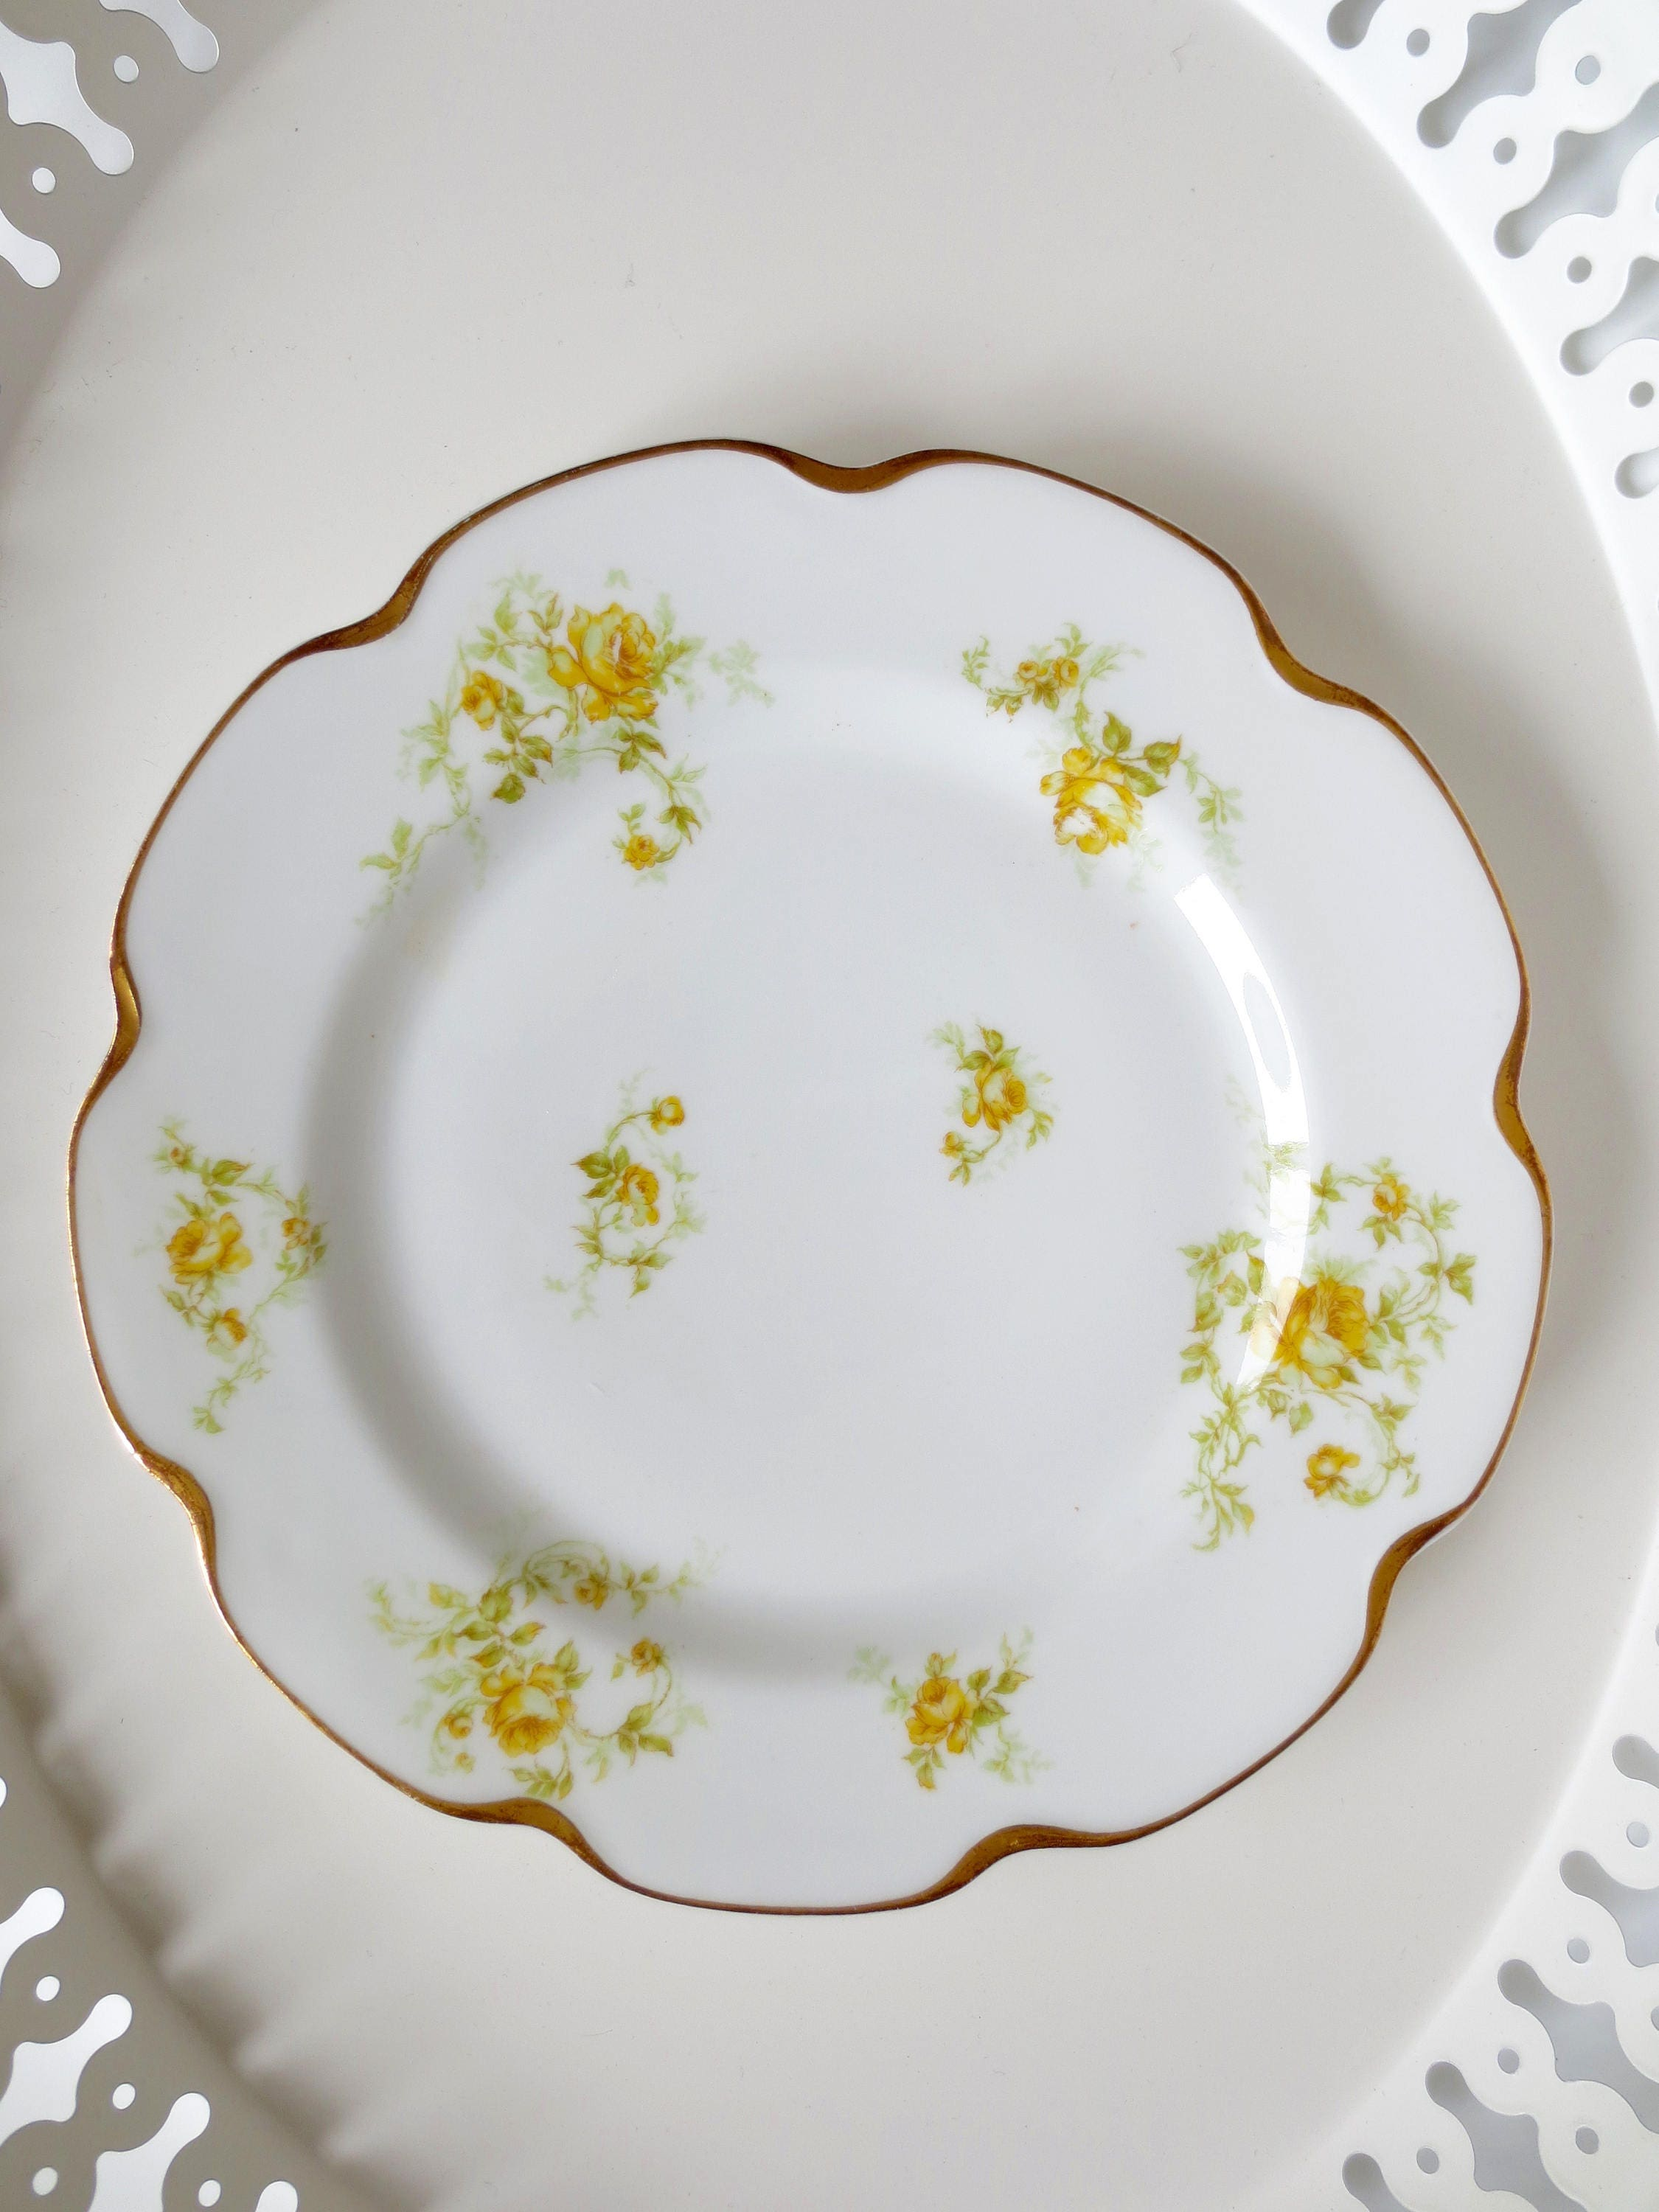 Haviland Limoges Dinner Plate Yellow Rose of Texas Decorative Shabby Chic Indianapolis Gold Trim China Pattern & Haviland Limoges Dinner Plate Yellow Rose of Texas Decorative Shabby ...